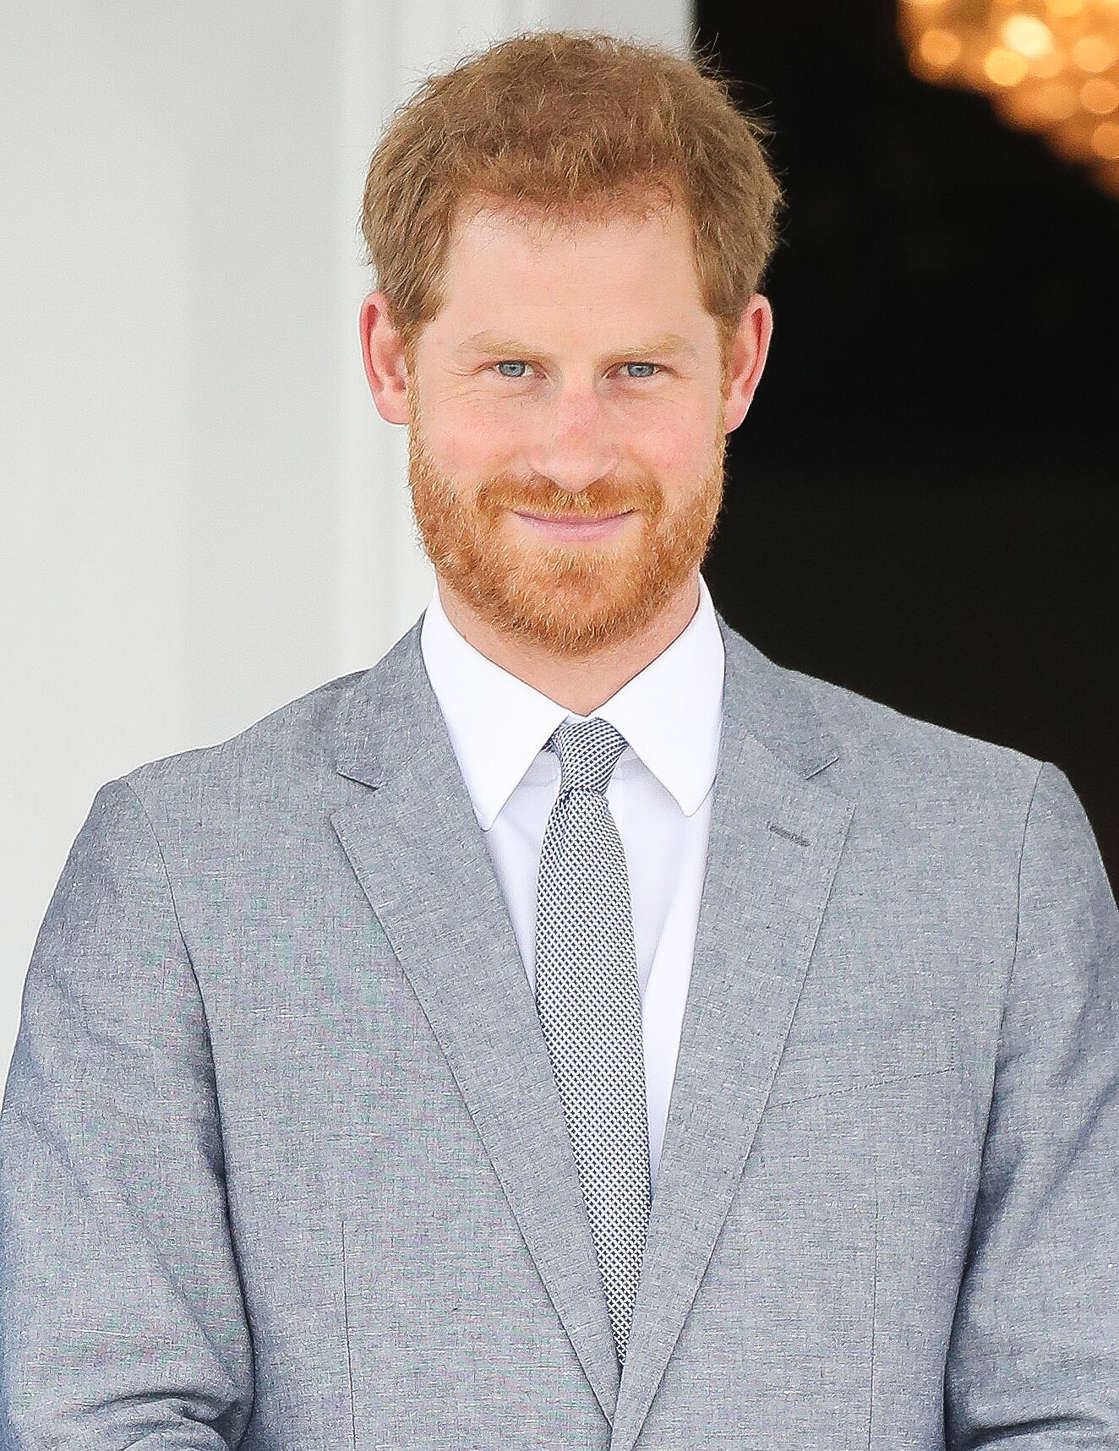 Prince Harry wearing a suit and tie: Chris Jackson/Getty Images Prince Harry